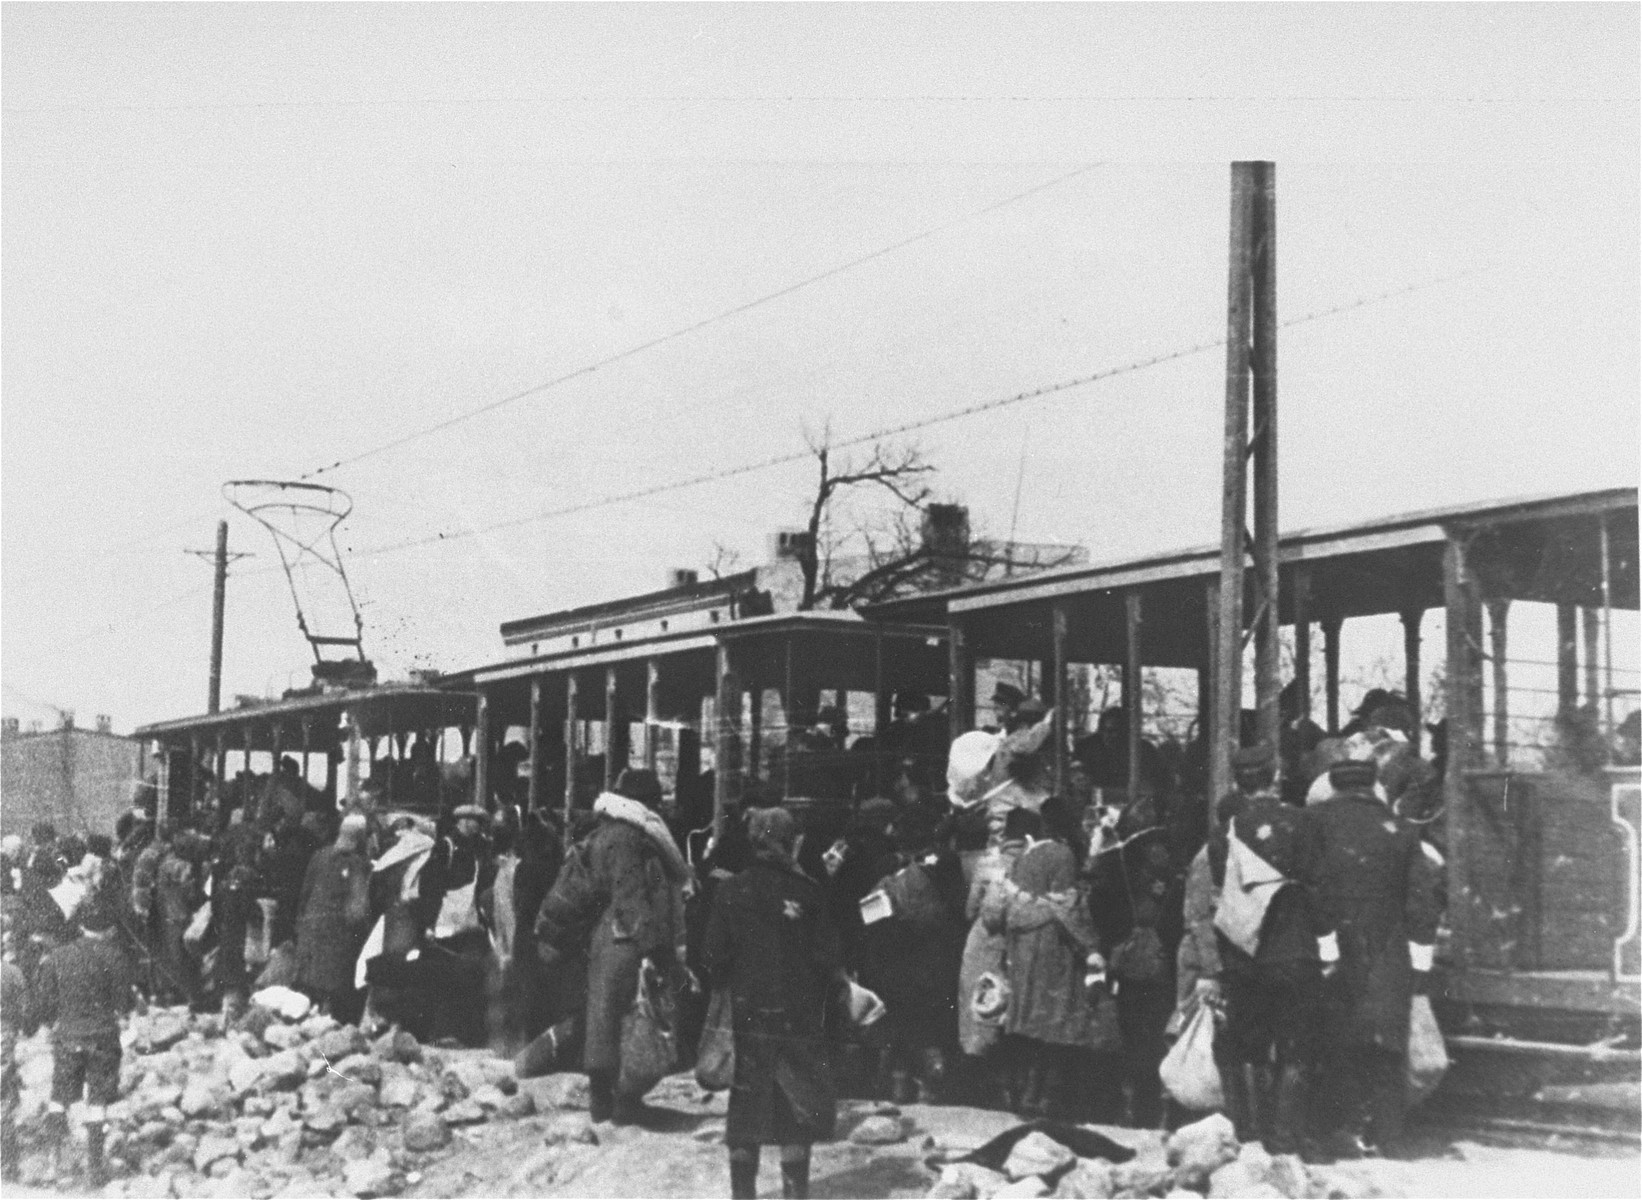 Newly arrived Jews, probably from Central Europe, board streetcars that will take them into the ghetto.